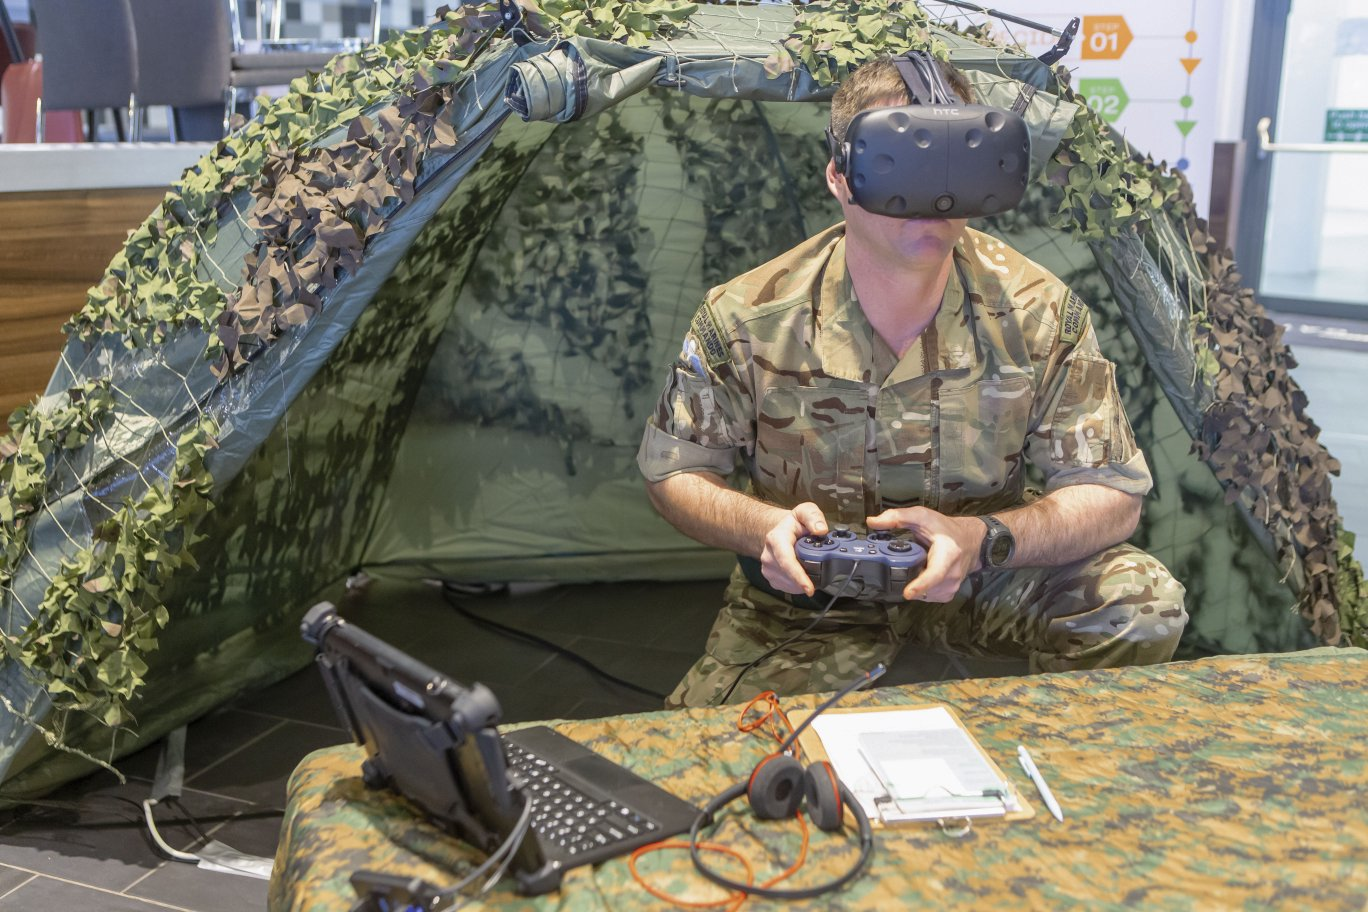 The OP module in D3A Defence's mortar training simulator showing an MFC with a head mounted display and using virtual target detection and acquisition equipment. (MetaVR)